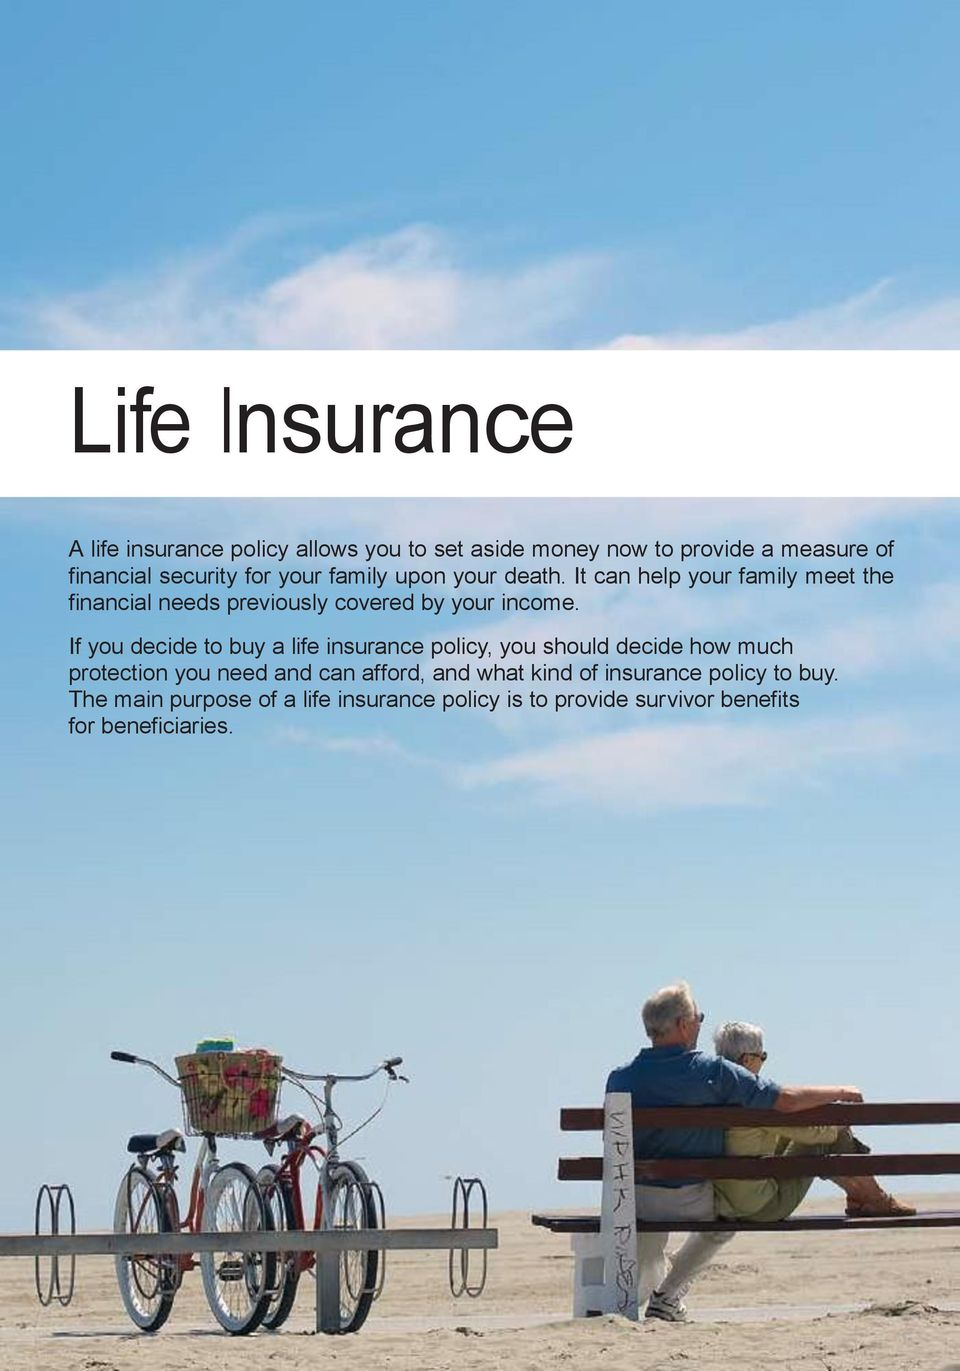 If you decide to buy a life insurance policy, you should decide how much protection you need and can afford, and what